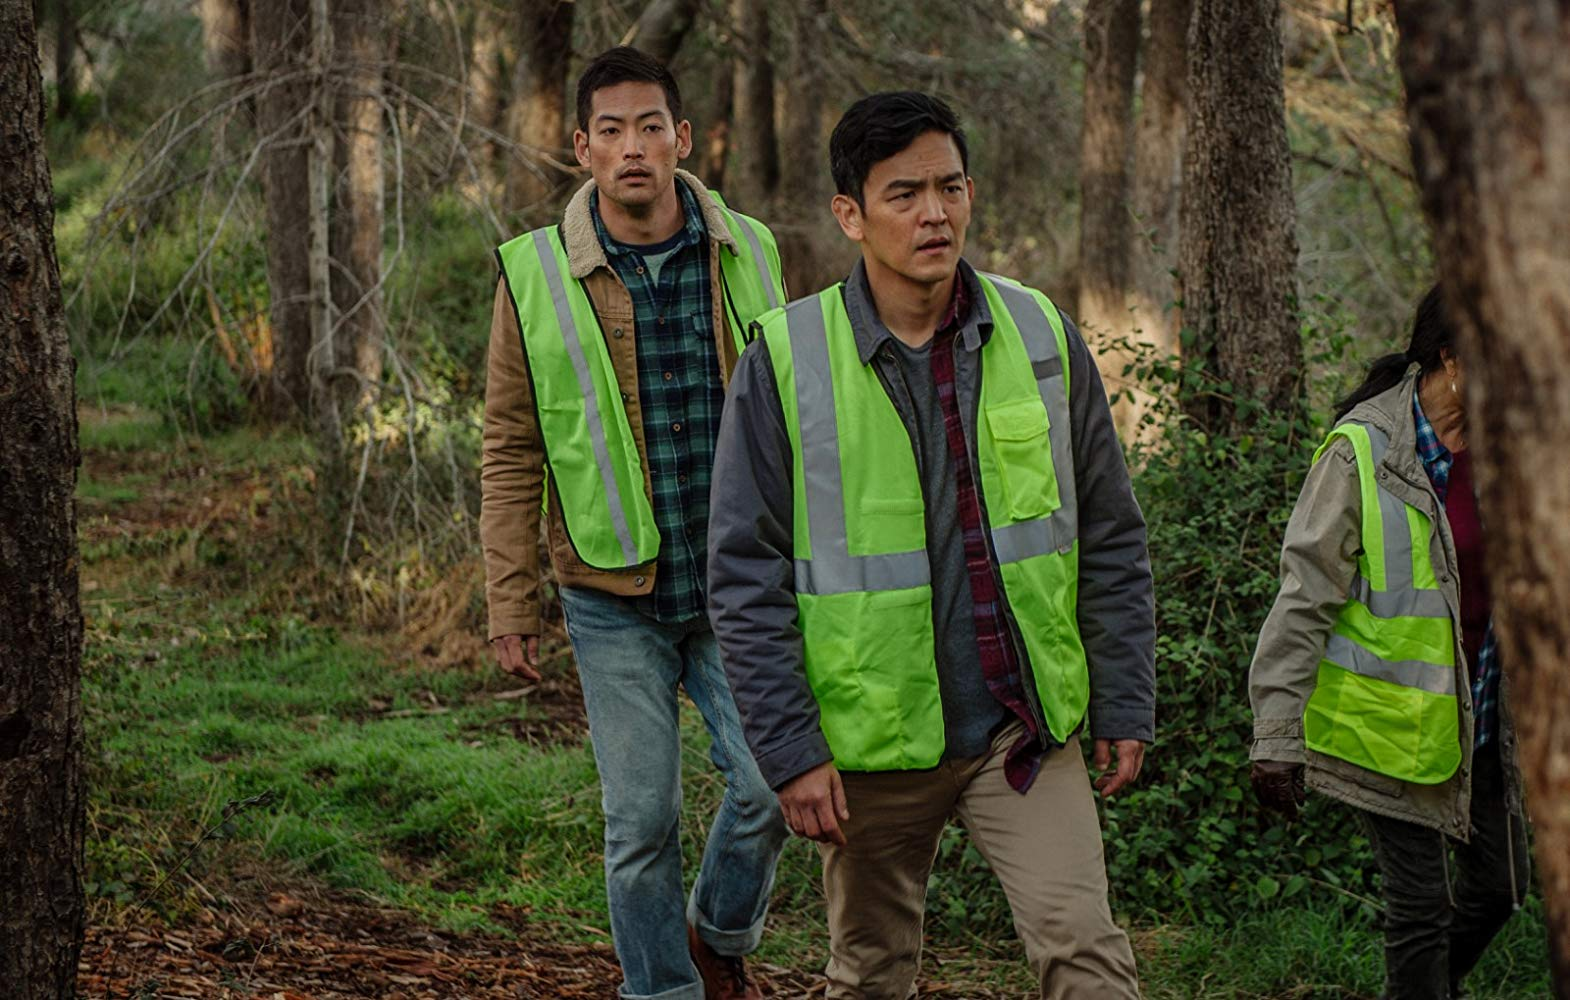 John Cho and Joseph Lee brothers in Searching movie